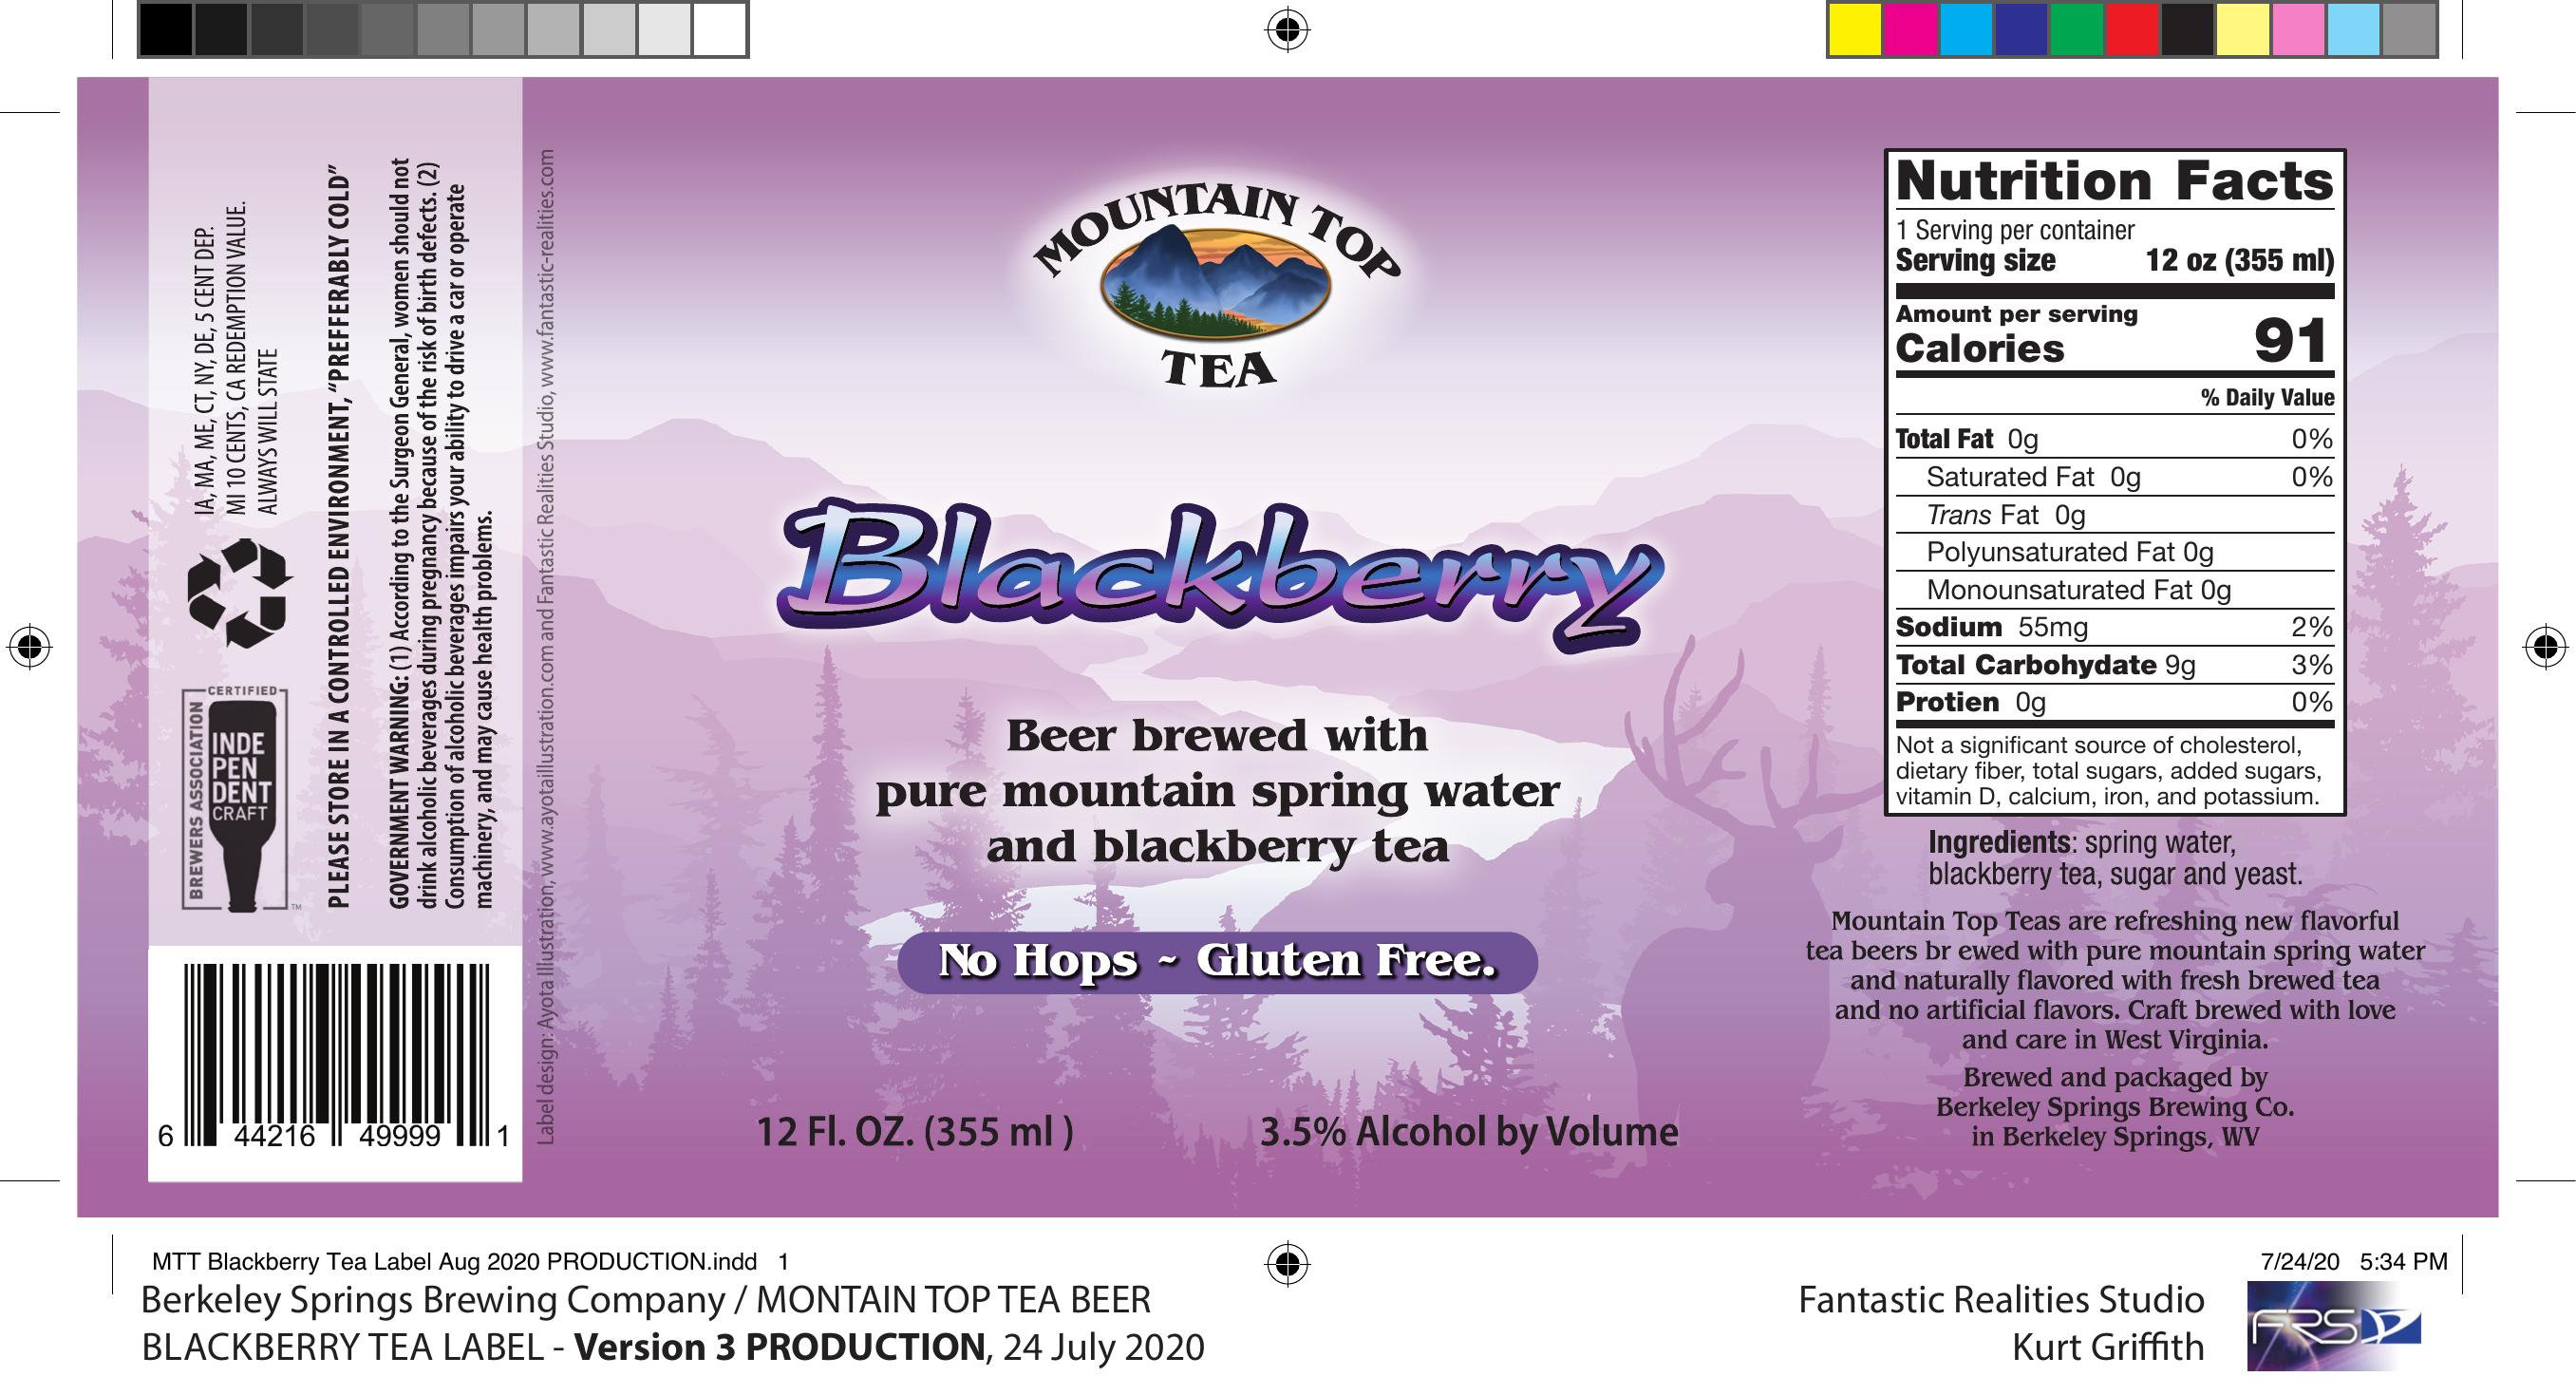 MTT Blackberry Tea Label Aug 2020 PRINT.